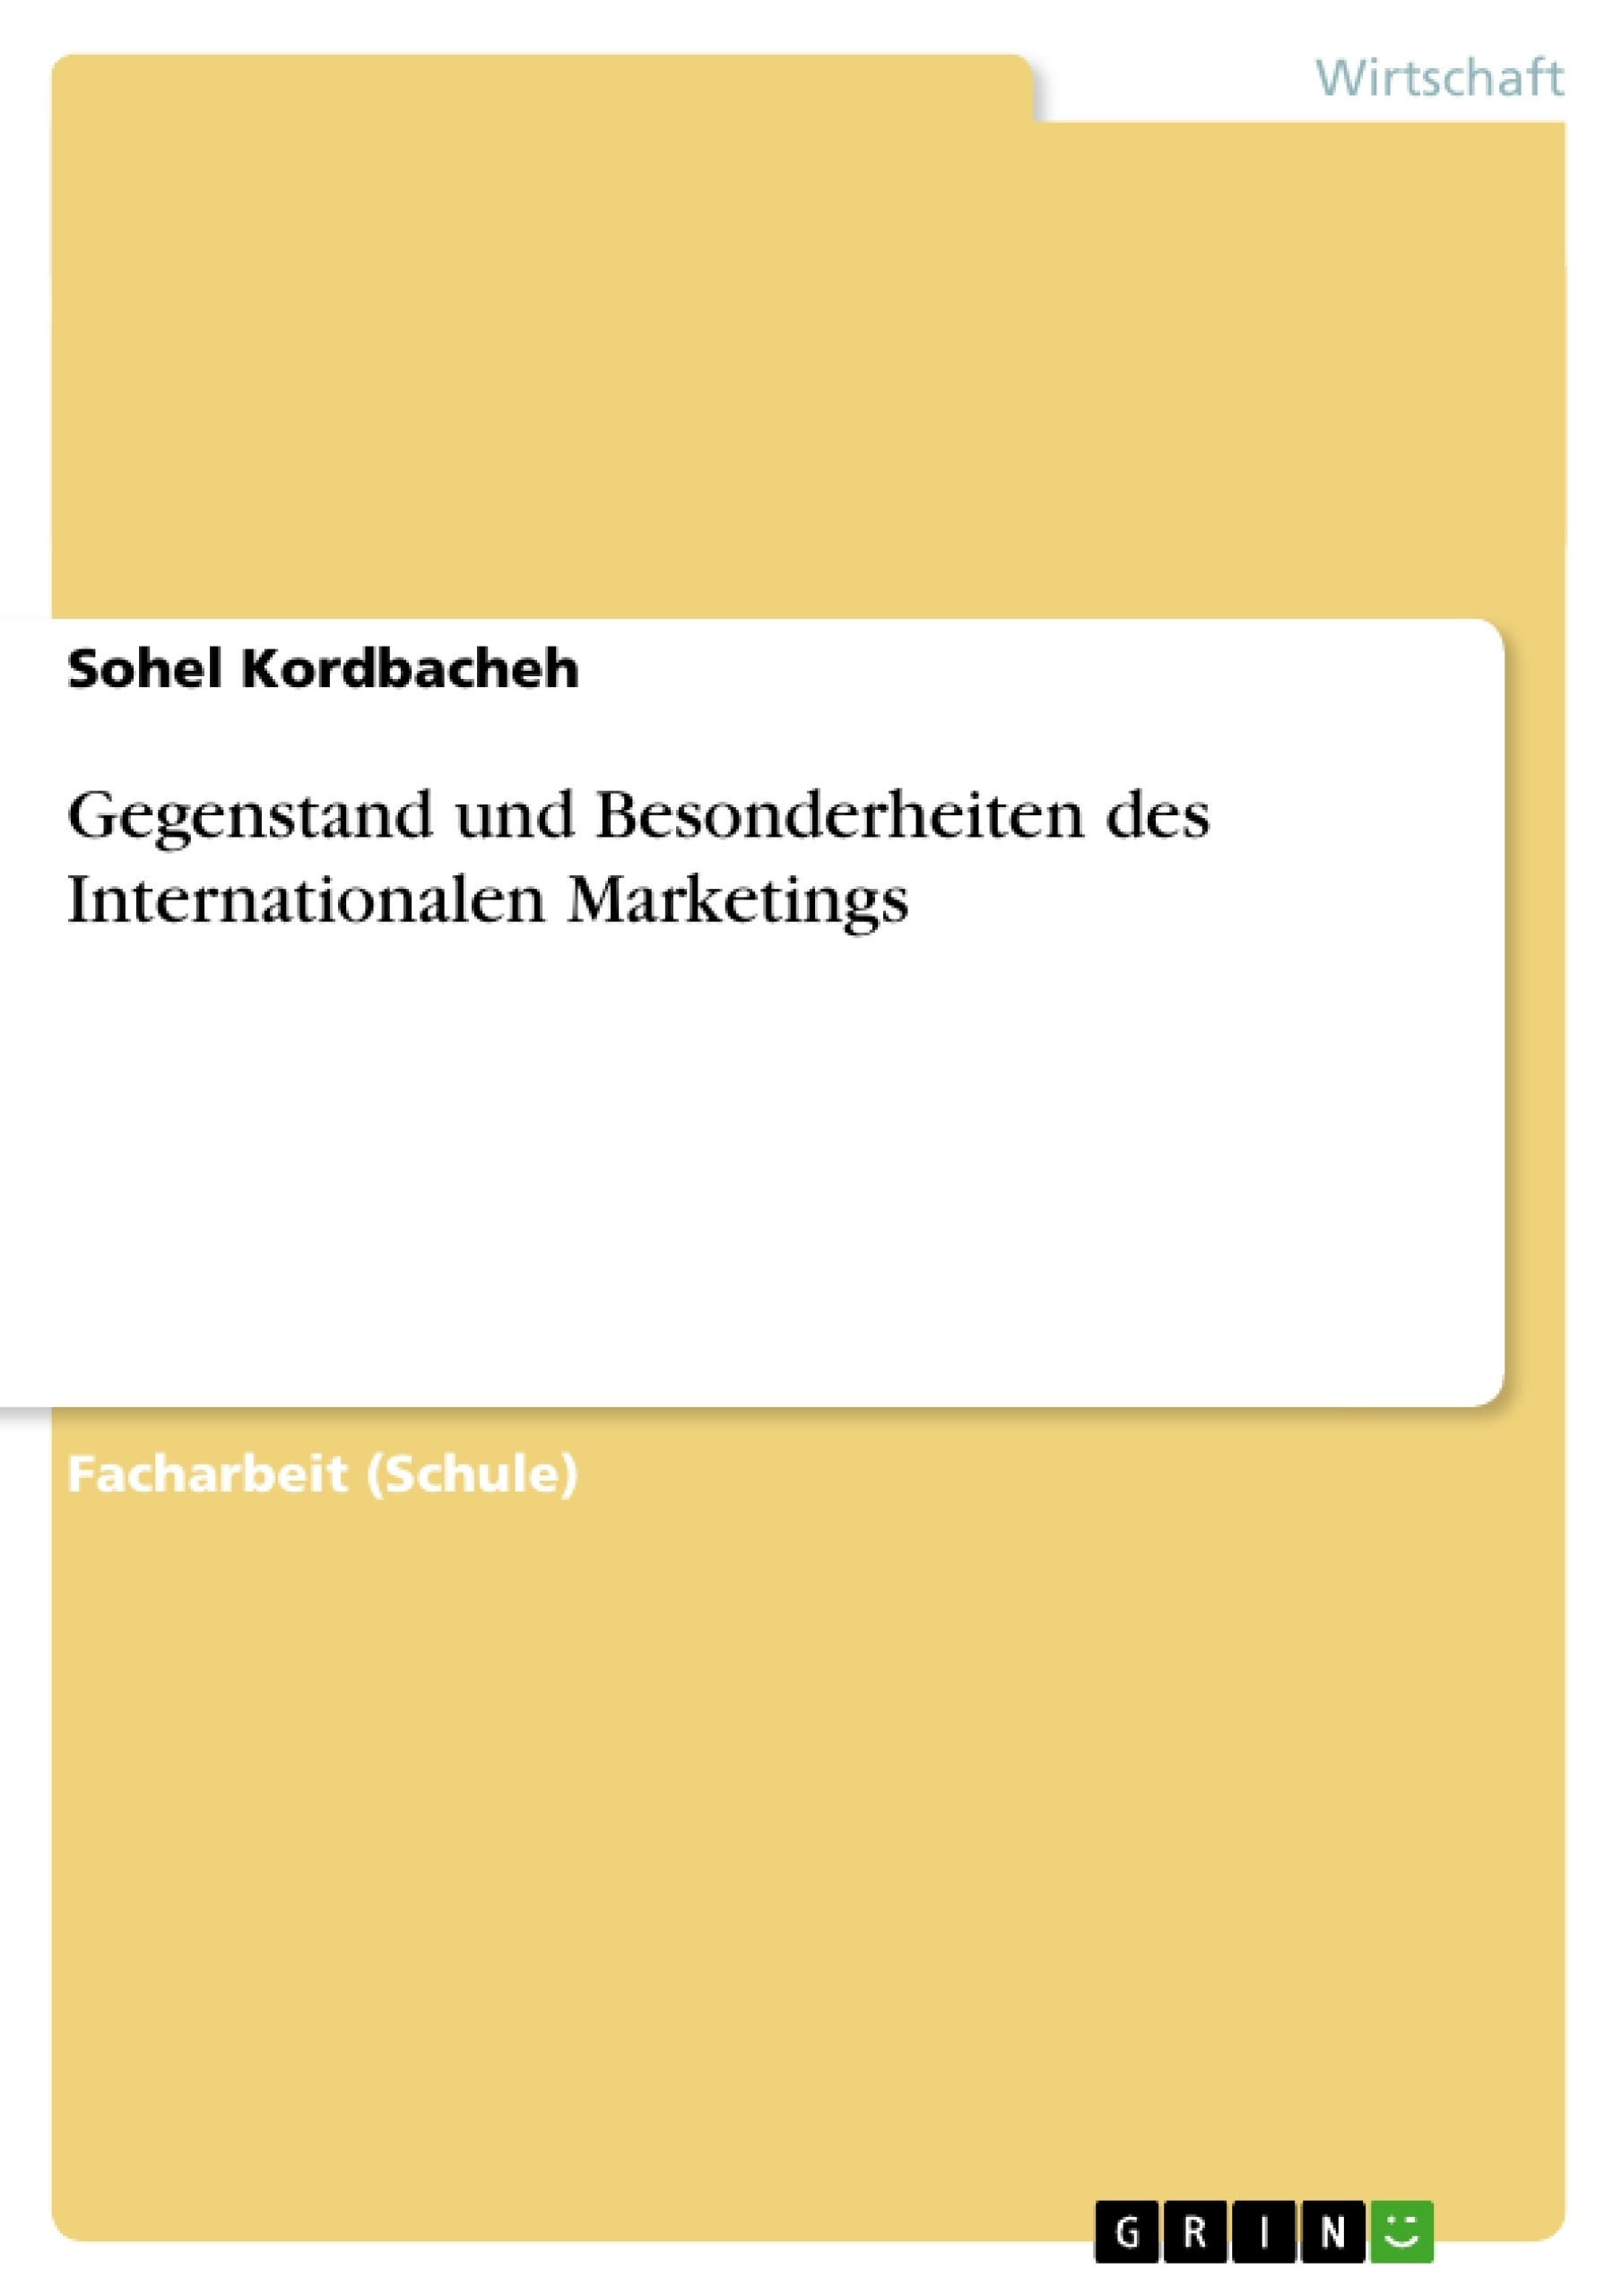 Titel: Gegenstand und Besonderheiten des Internationalen Marketings